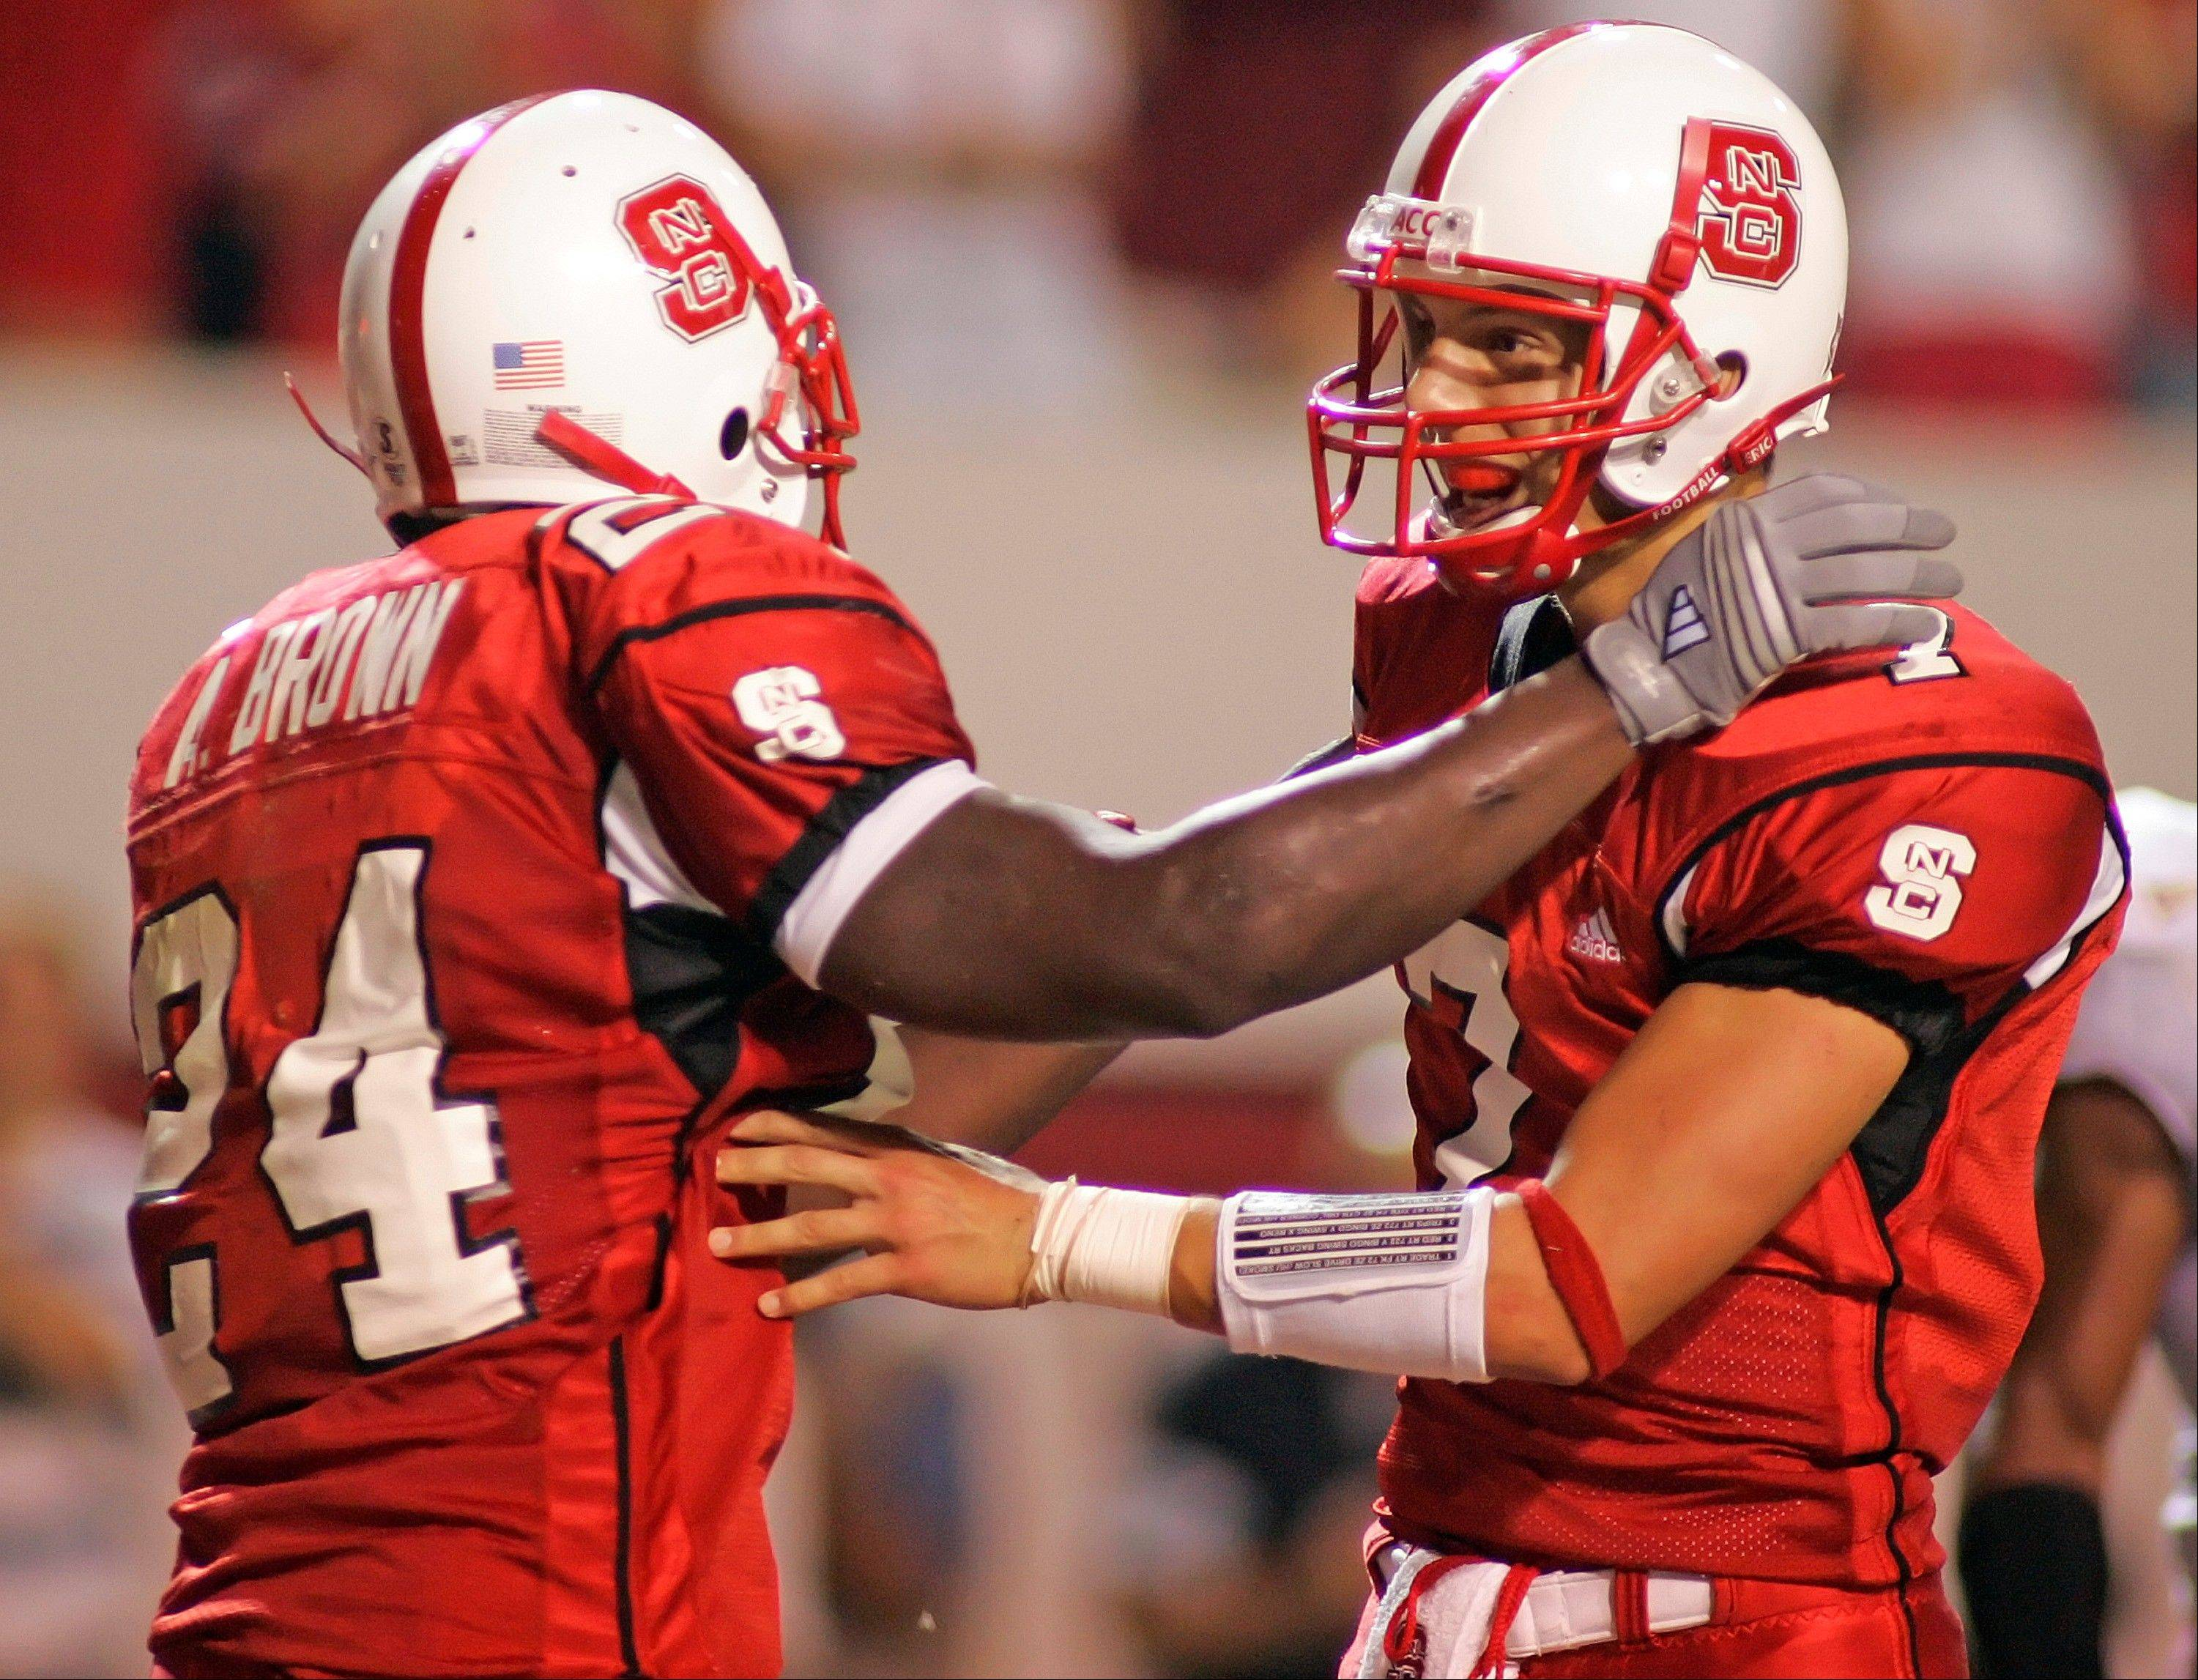 From 2005-06, Trestman served as offensive coordinator of North Carolina State, where the Wolfpack went 10-14 during his tenure. North Carolina State quarterback Daniel Evans, right, congratulates runningback Andre Brown in a win against Boston College in 2006.